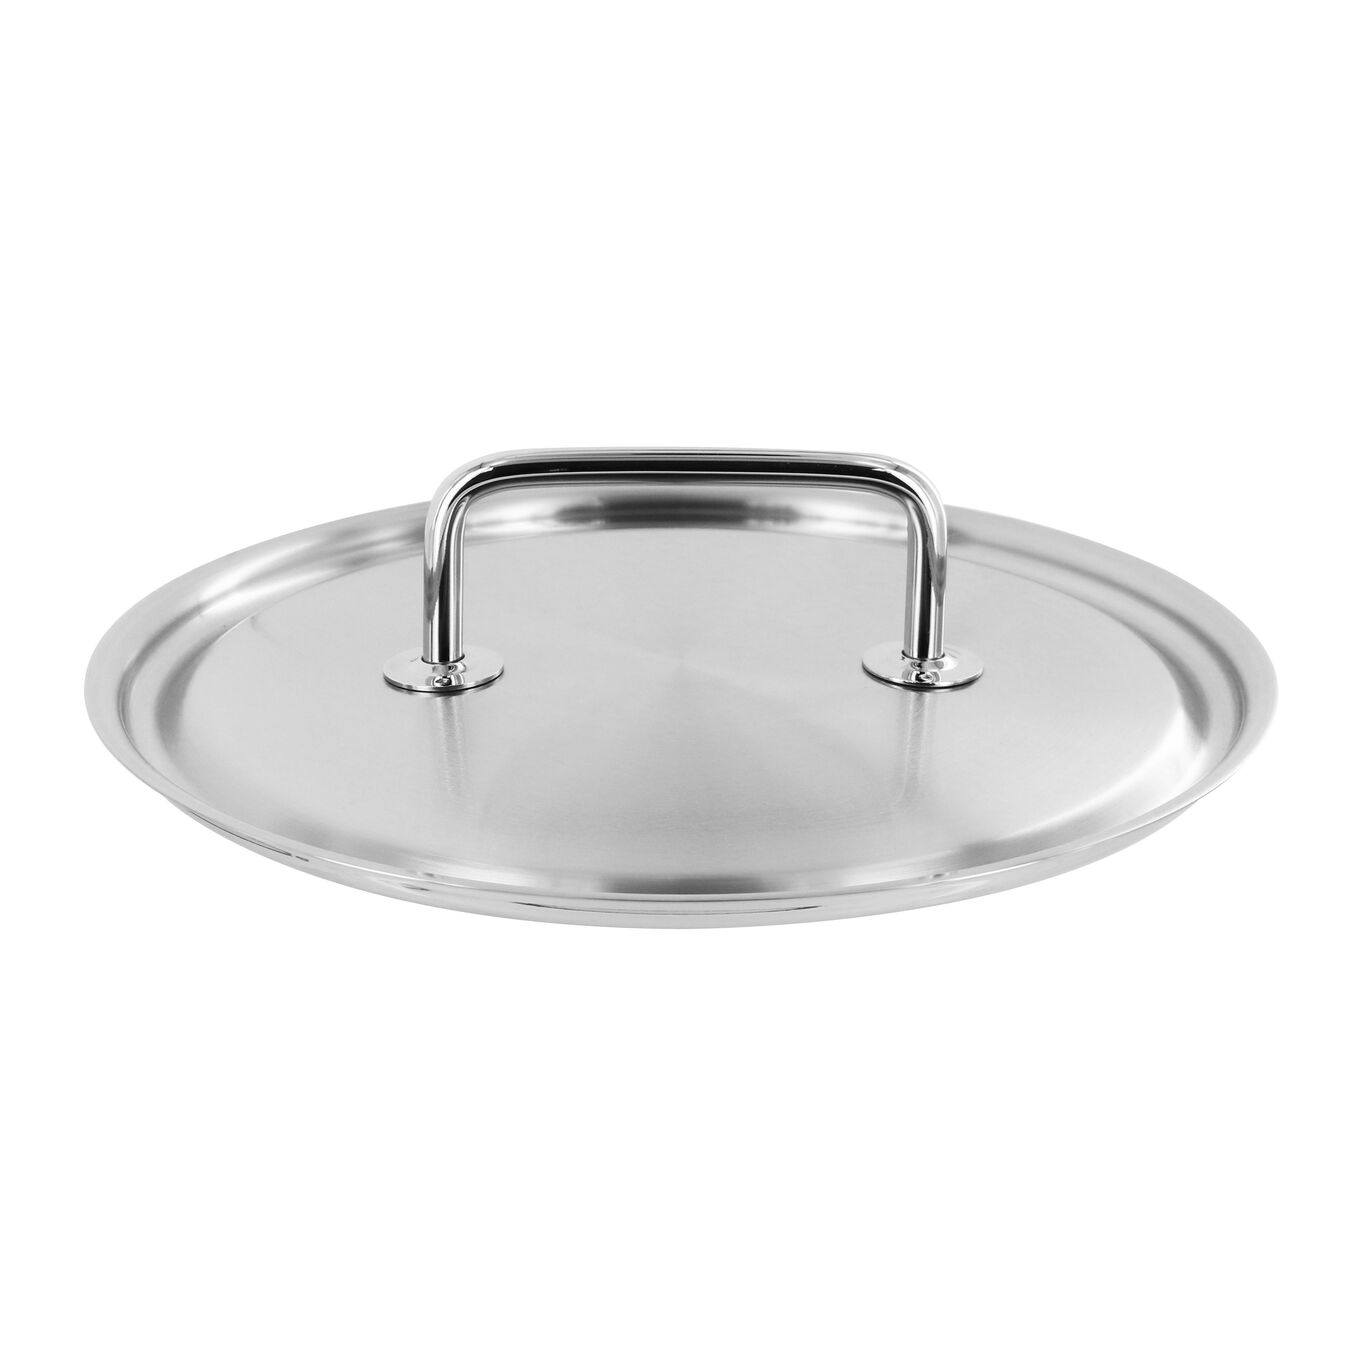 Couvercle, round   18/10 Stainless Steel,,large 1